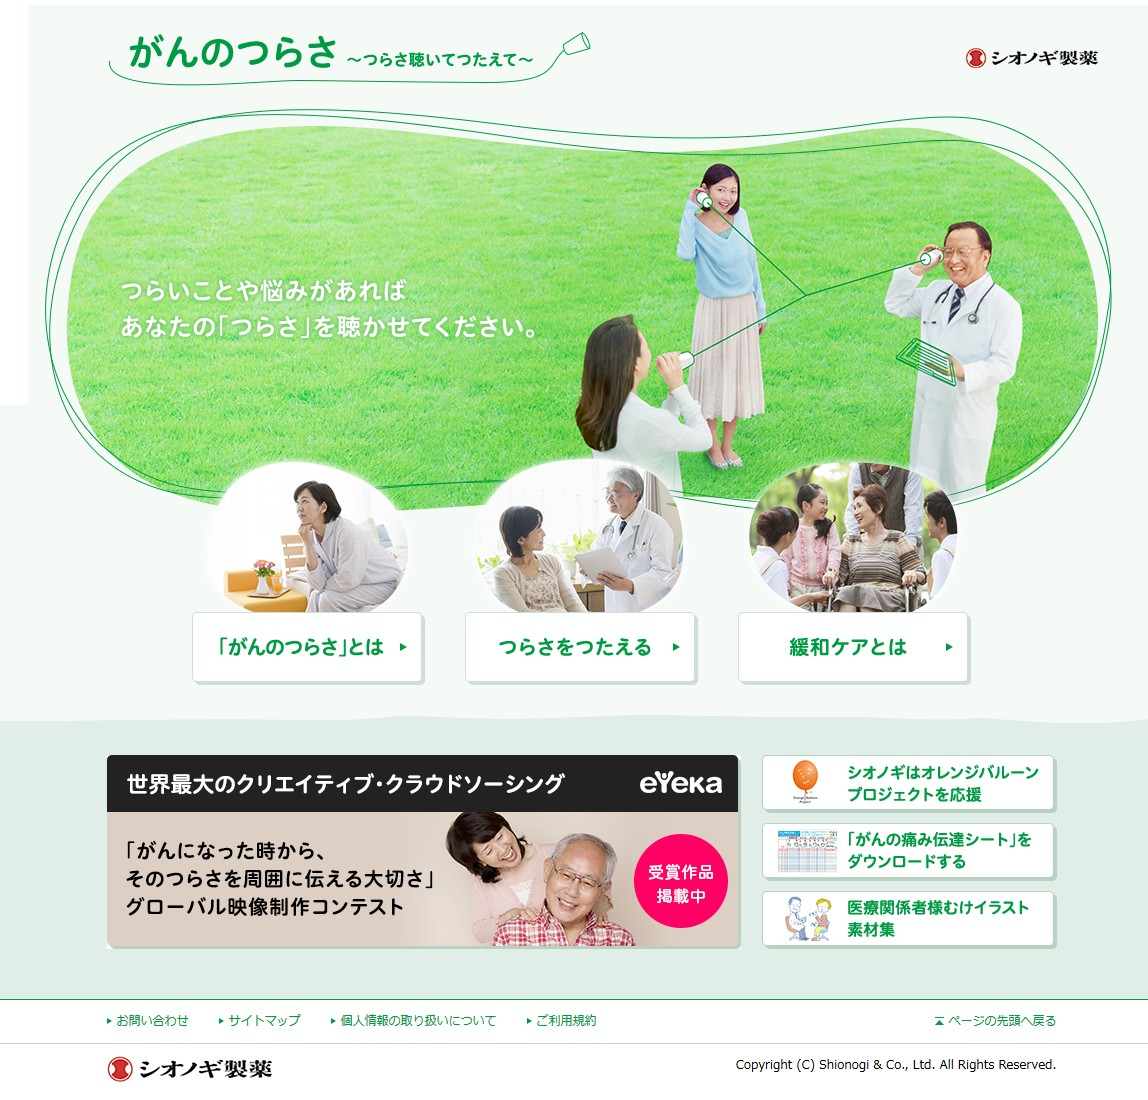 A banner on Shionogi's website, linking to the page that display's eYeka's community-created videos